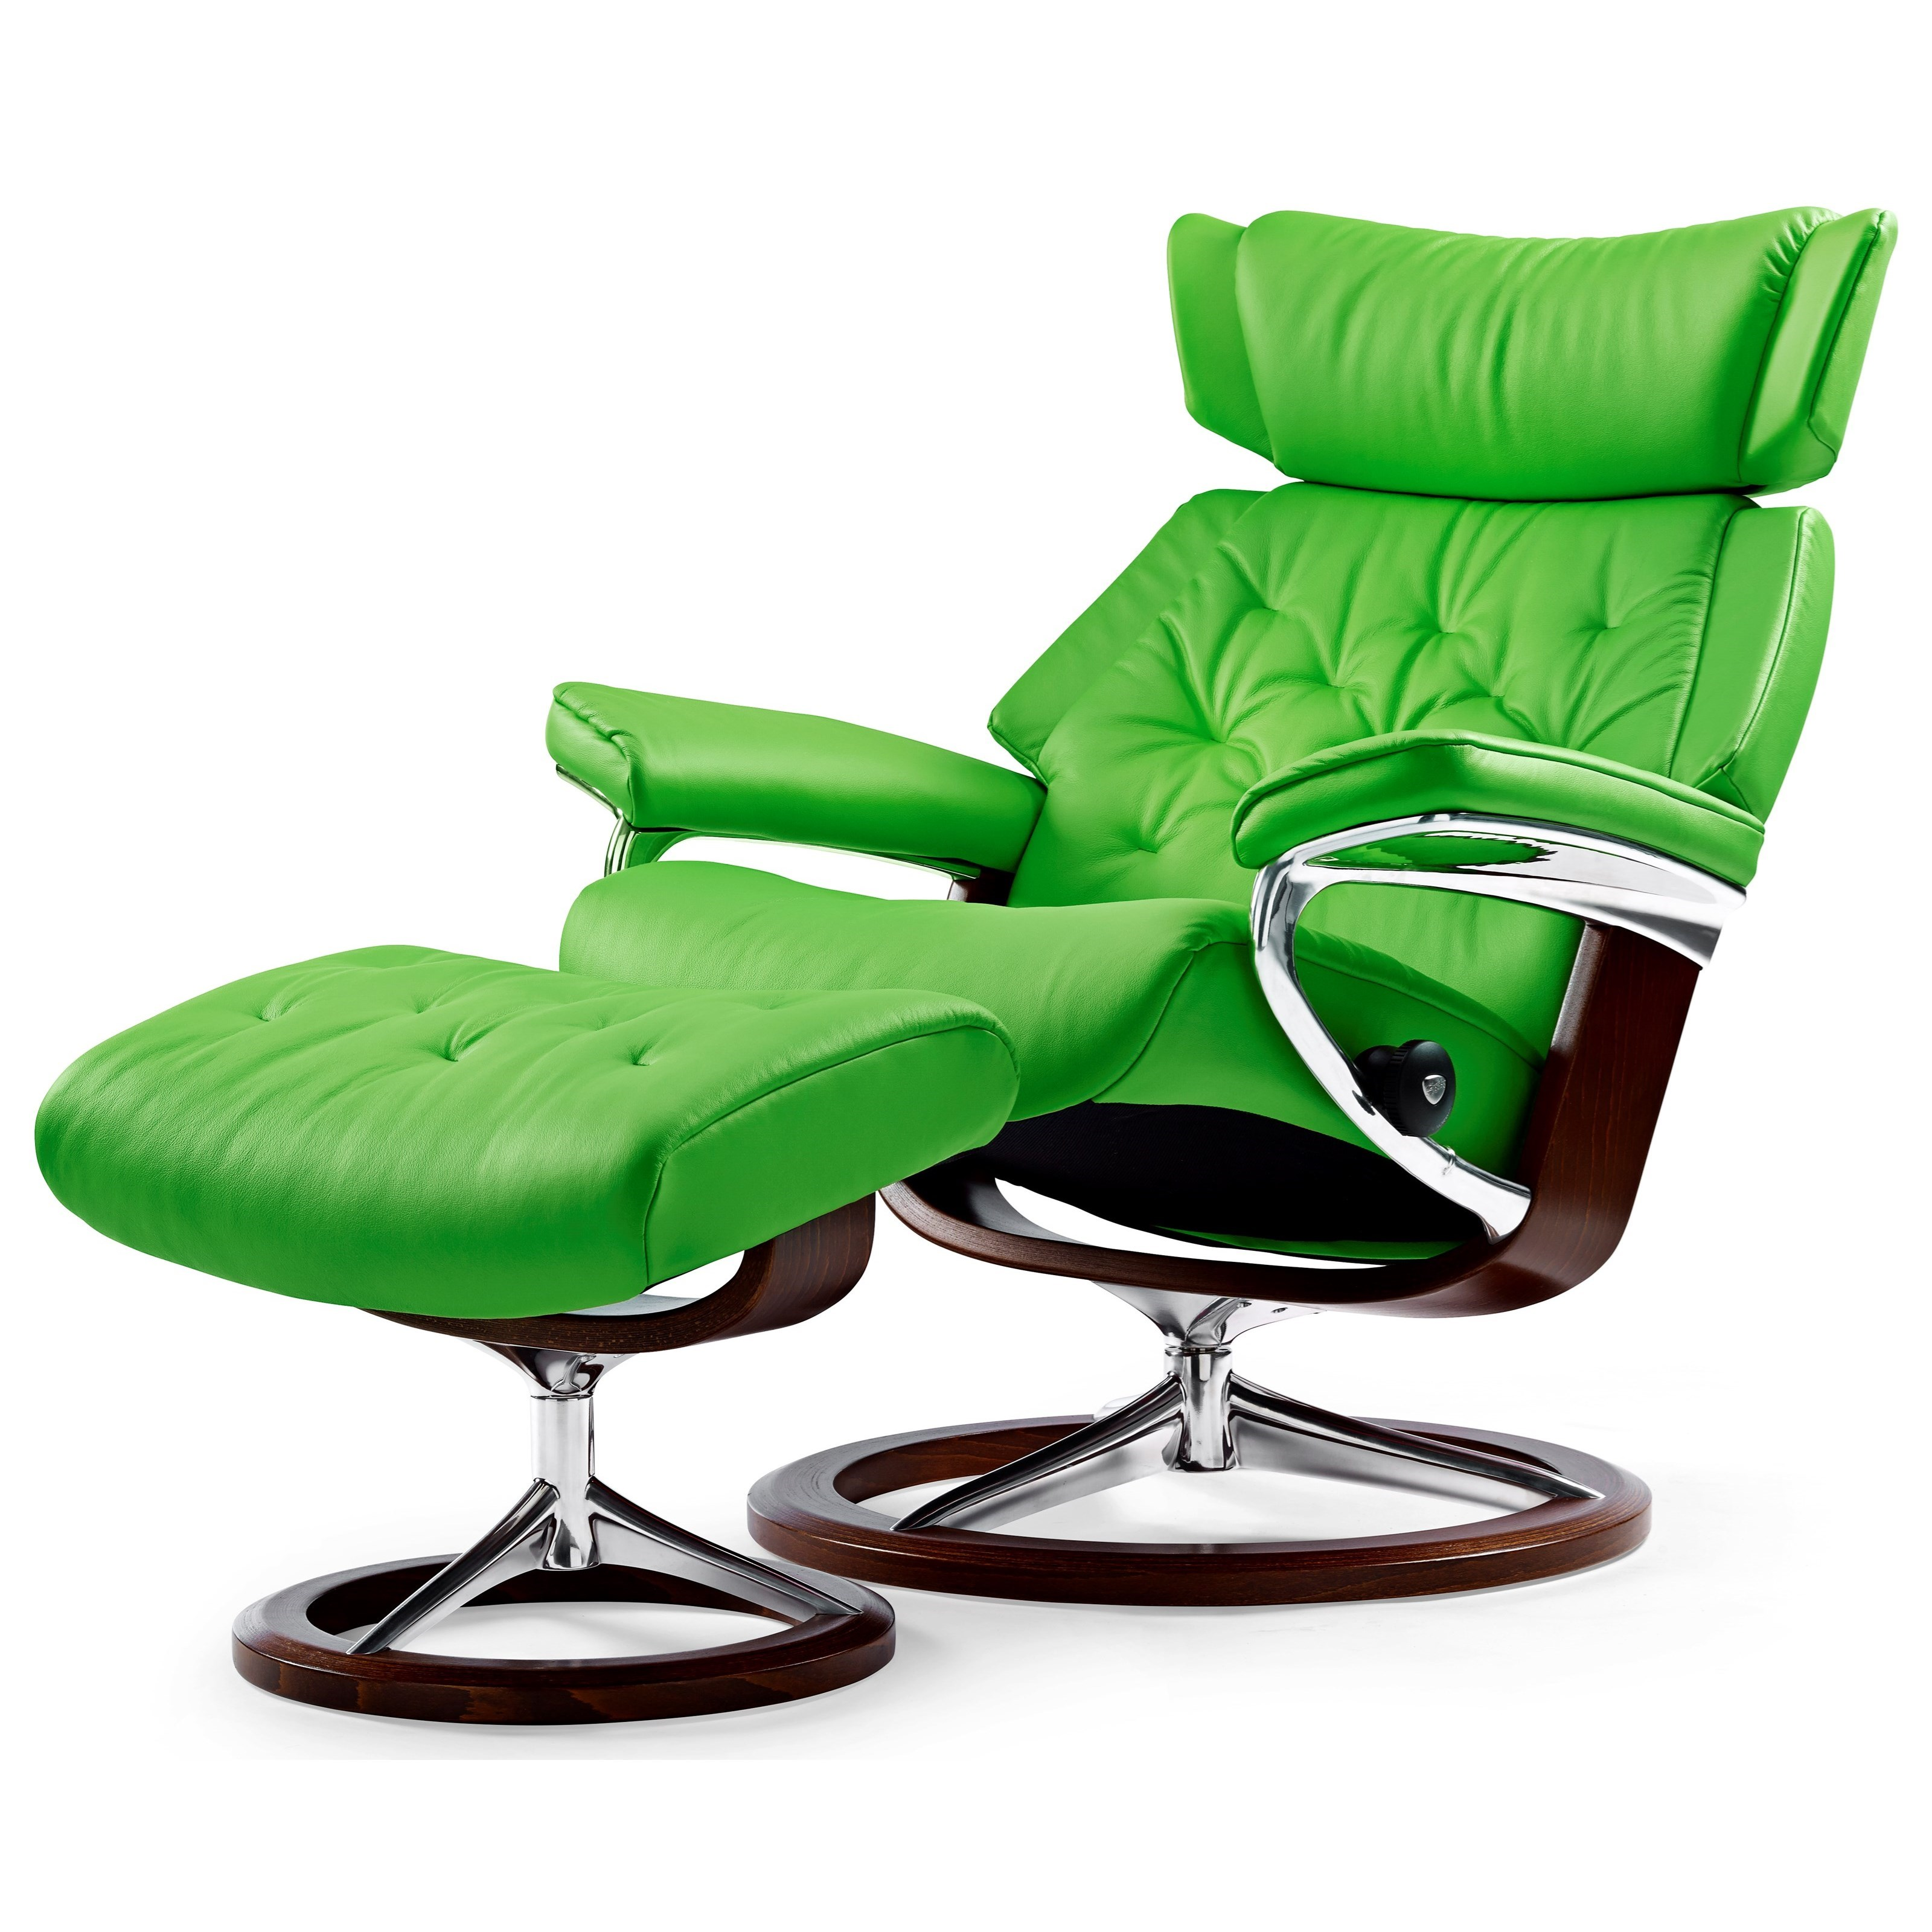 Skyline Medium Chair & Ottoman with Signature Base by Stressless at Jordan's Home Furnishings